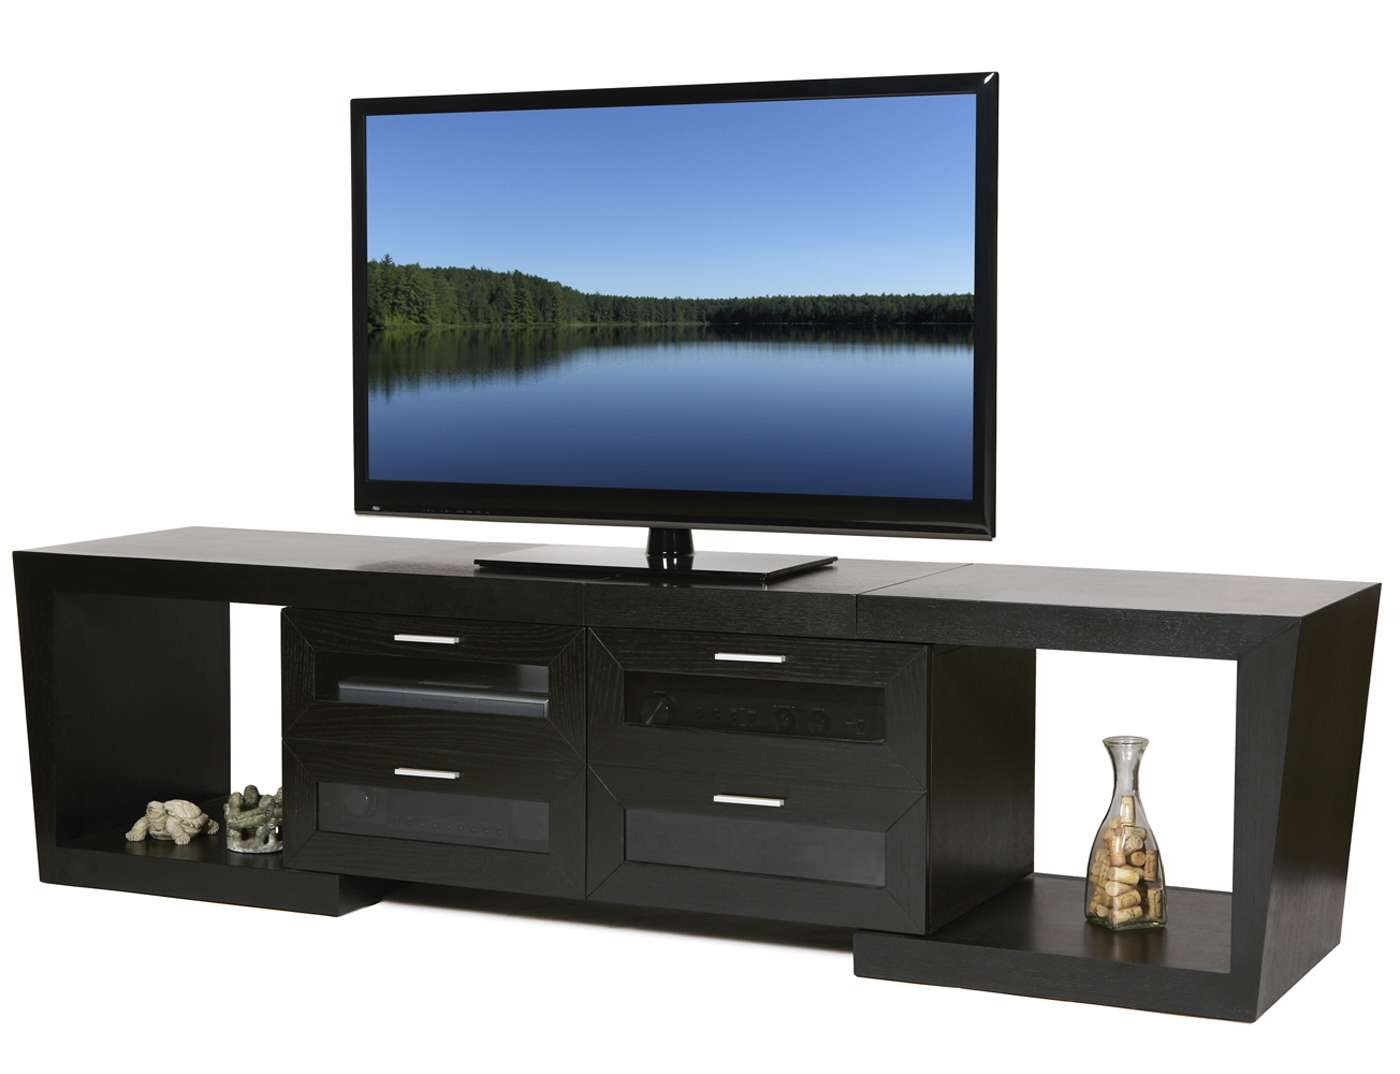 Rectangle Black Narrow Short Tv Stand With Square Shelves And Pertaining To Modern Tv Stands For Flat Screens (View 12 of 15)